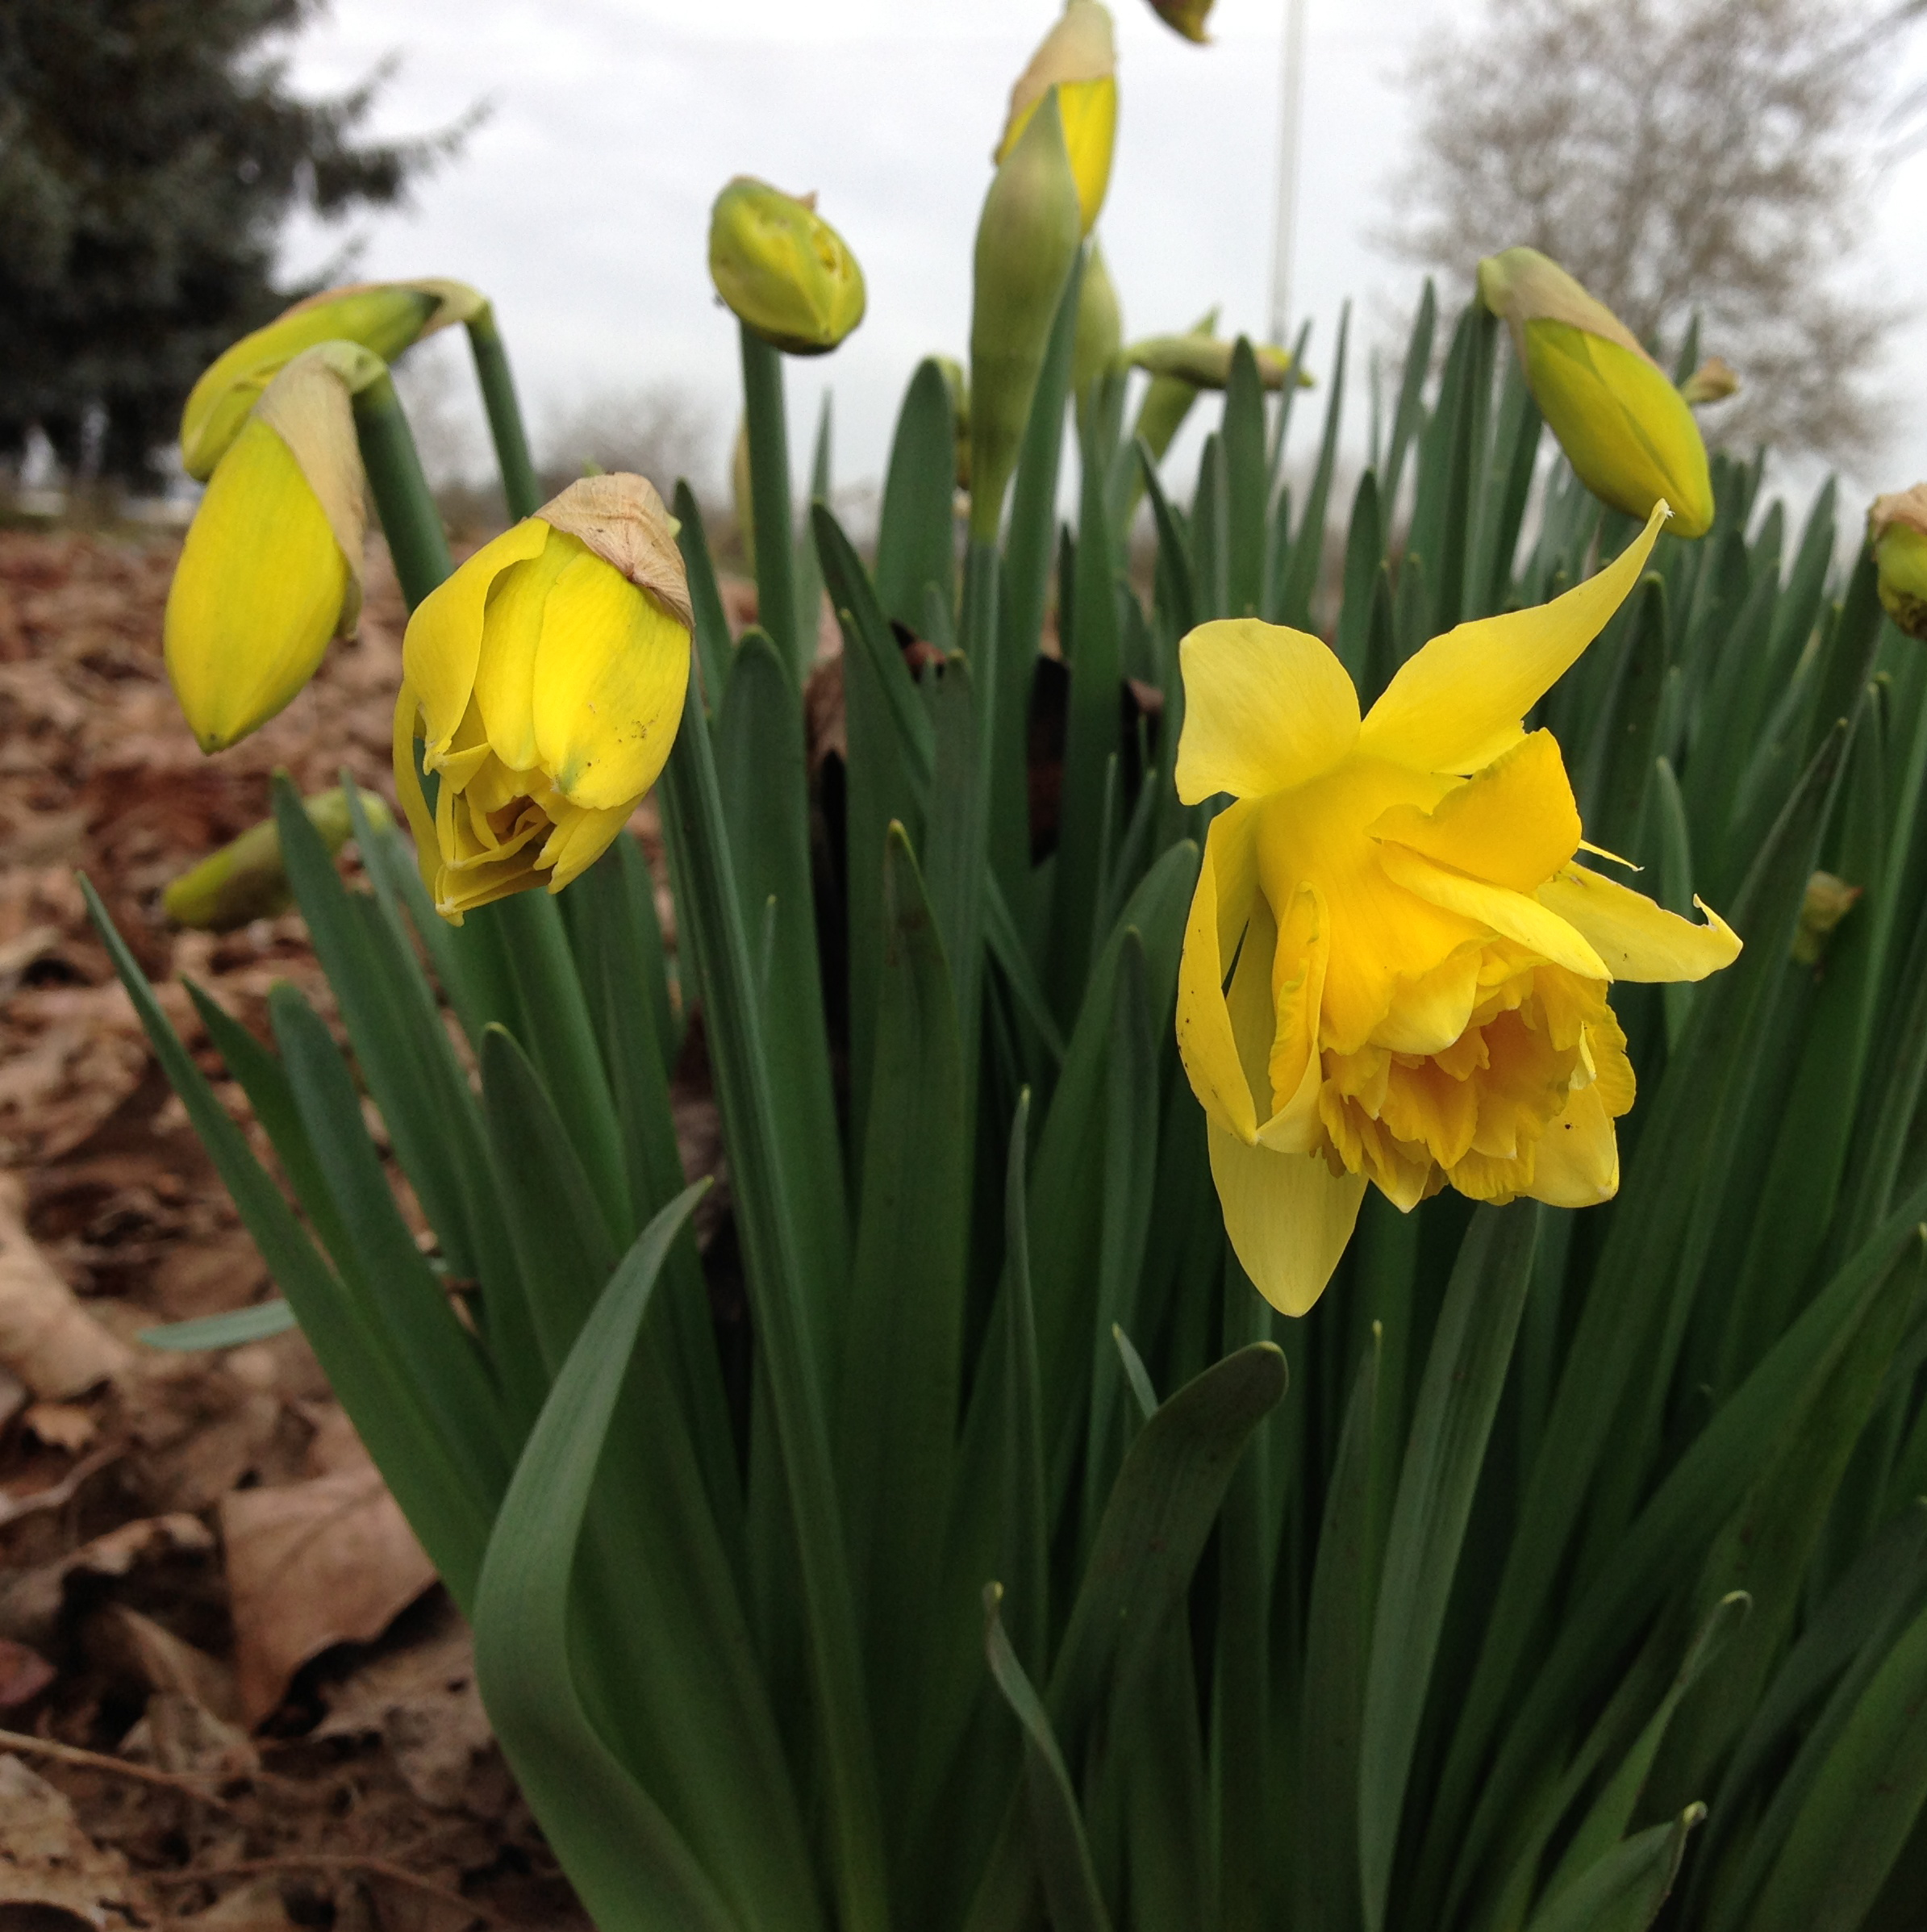 The first daffodils